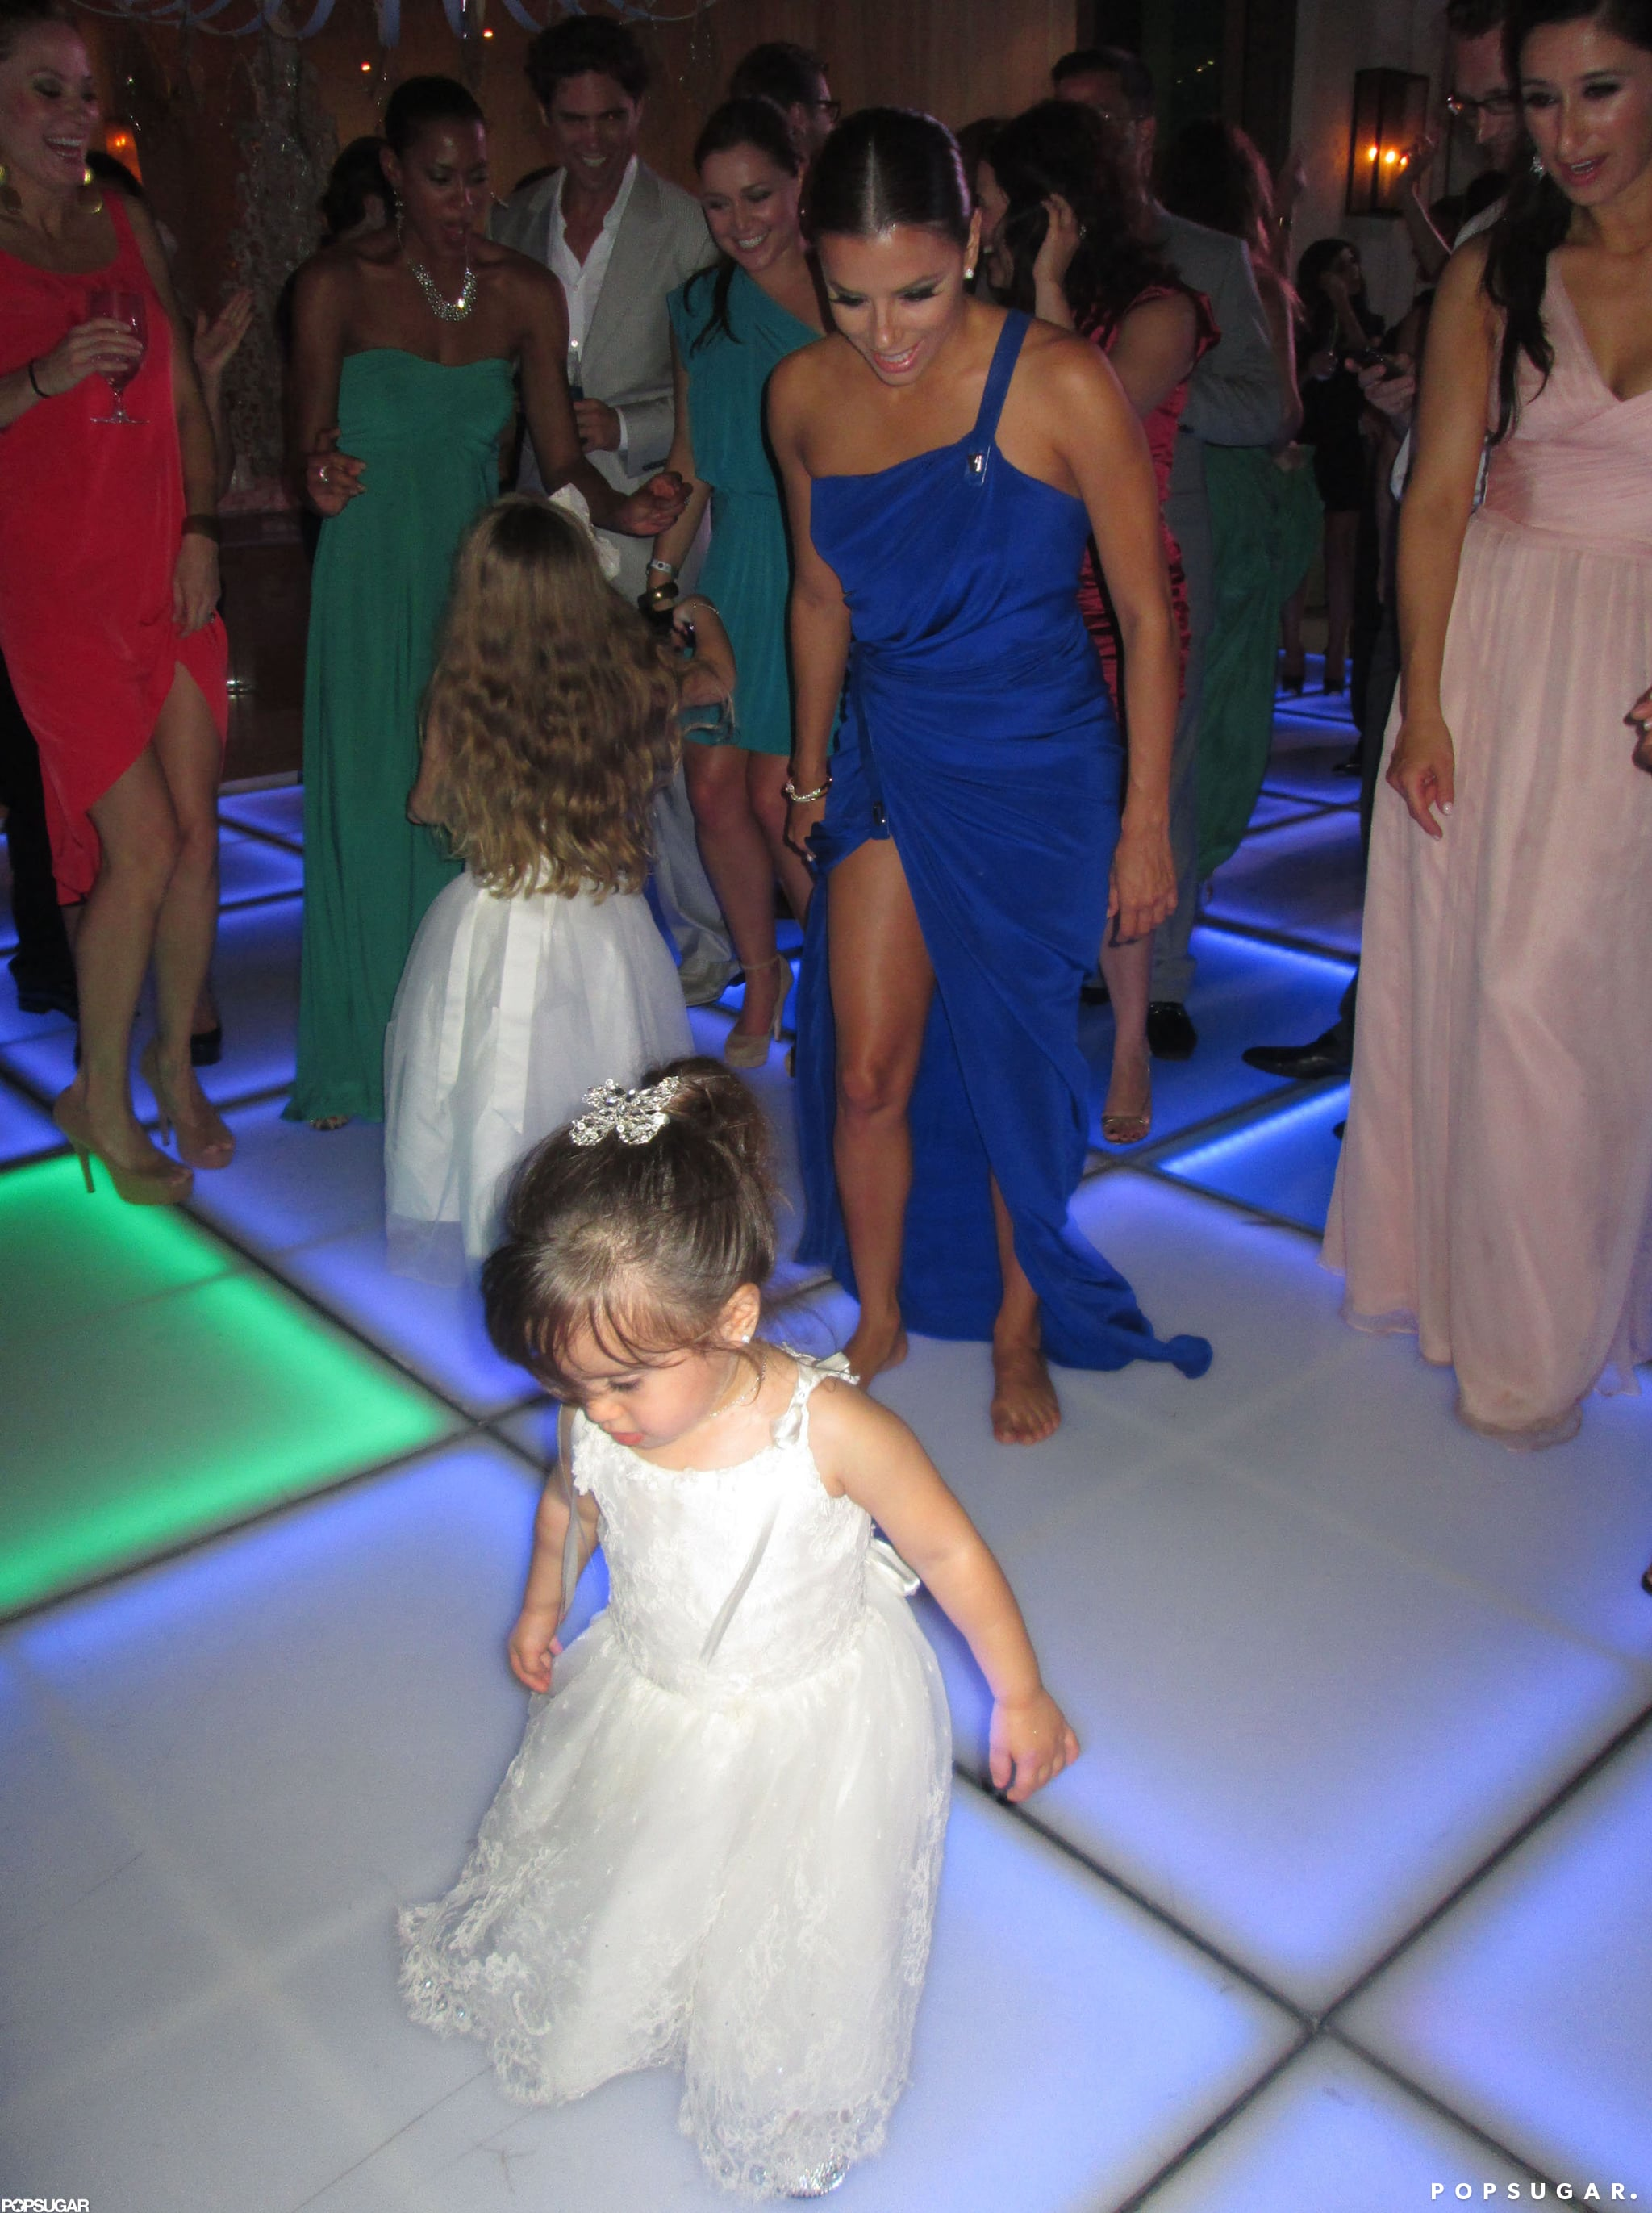 Eva Longoria danced with the flower girls at Mario Lopez and Courtney Mazza's ceremony in Punta Mita, Mexico, in December 2012.